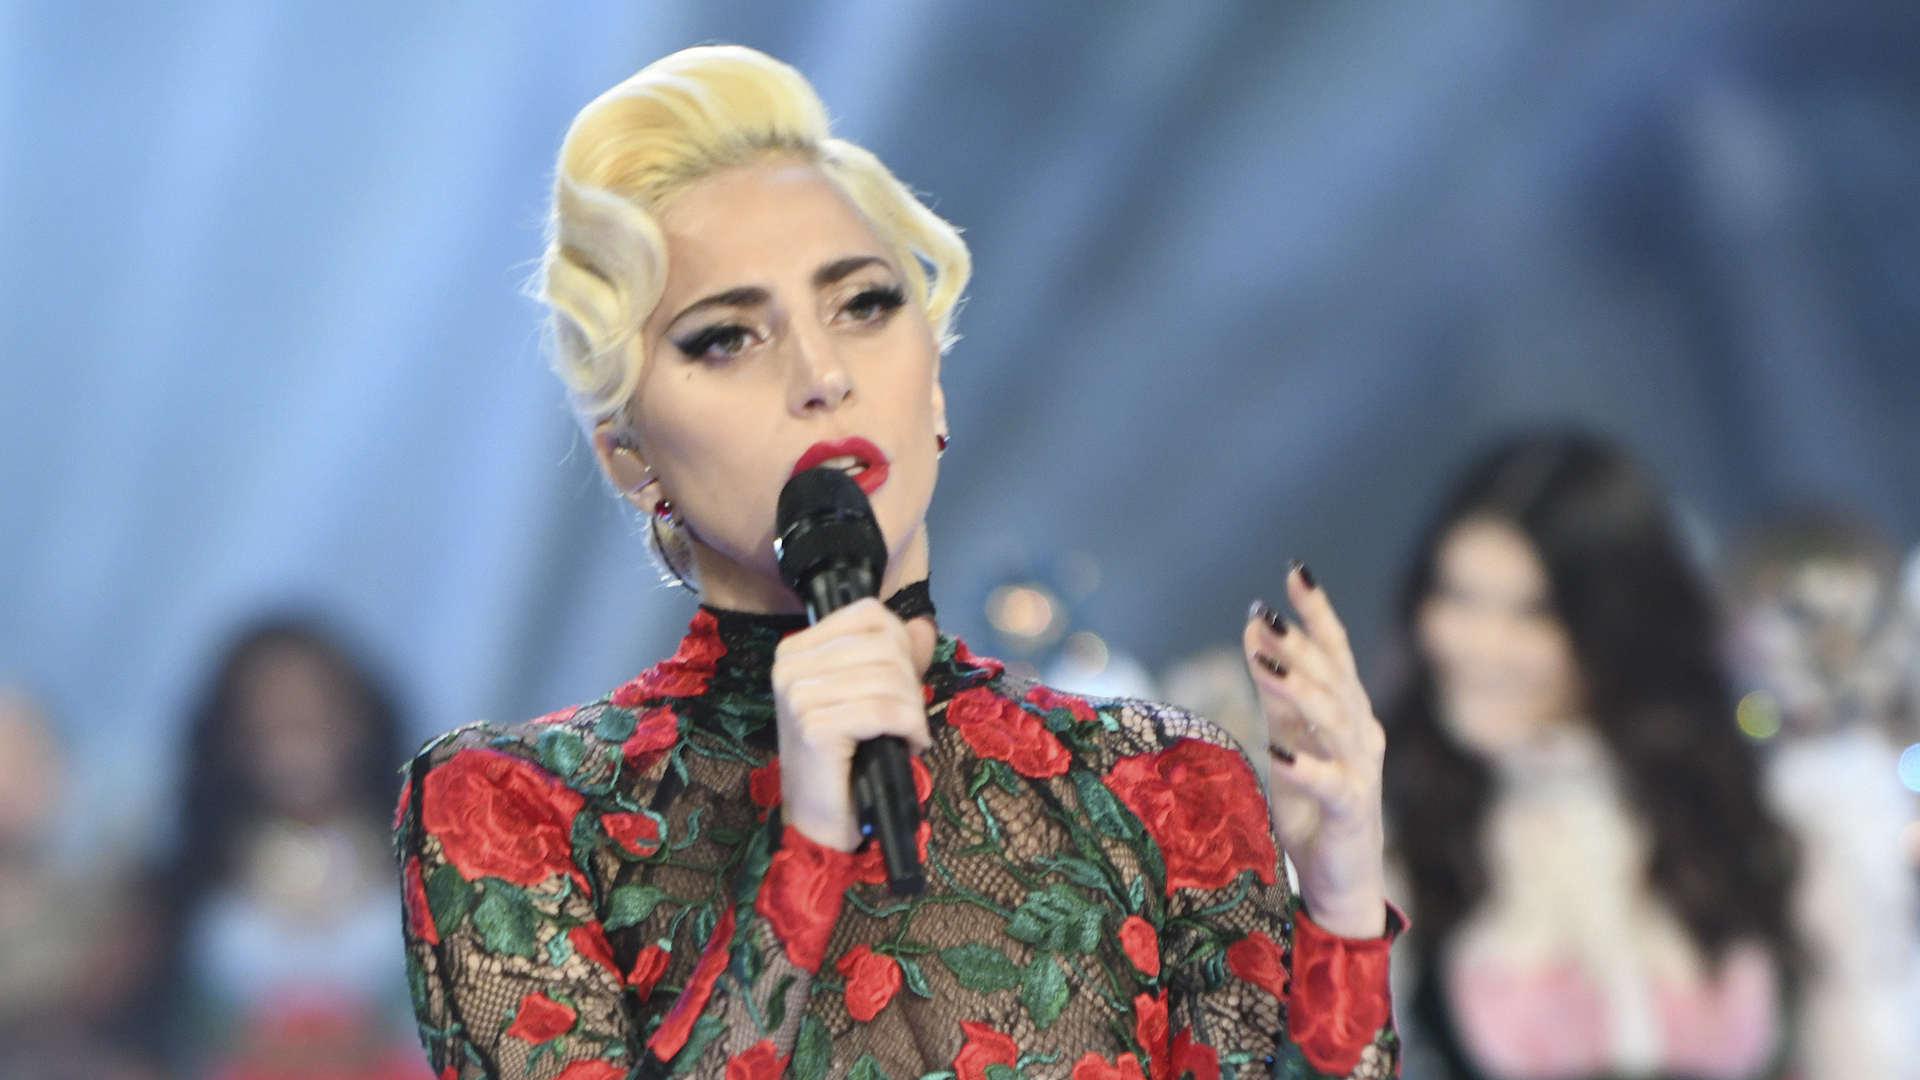 Lady Gaga clearly delivers an emotional performance during the show.